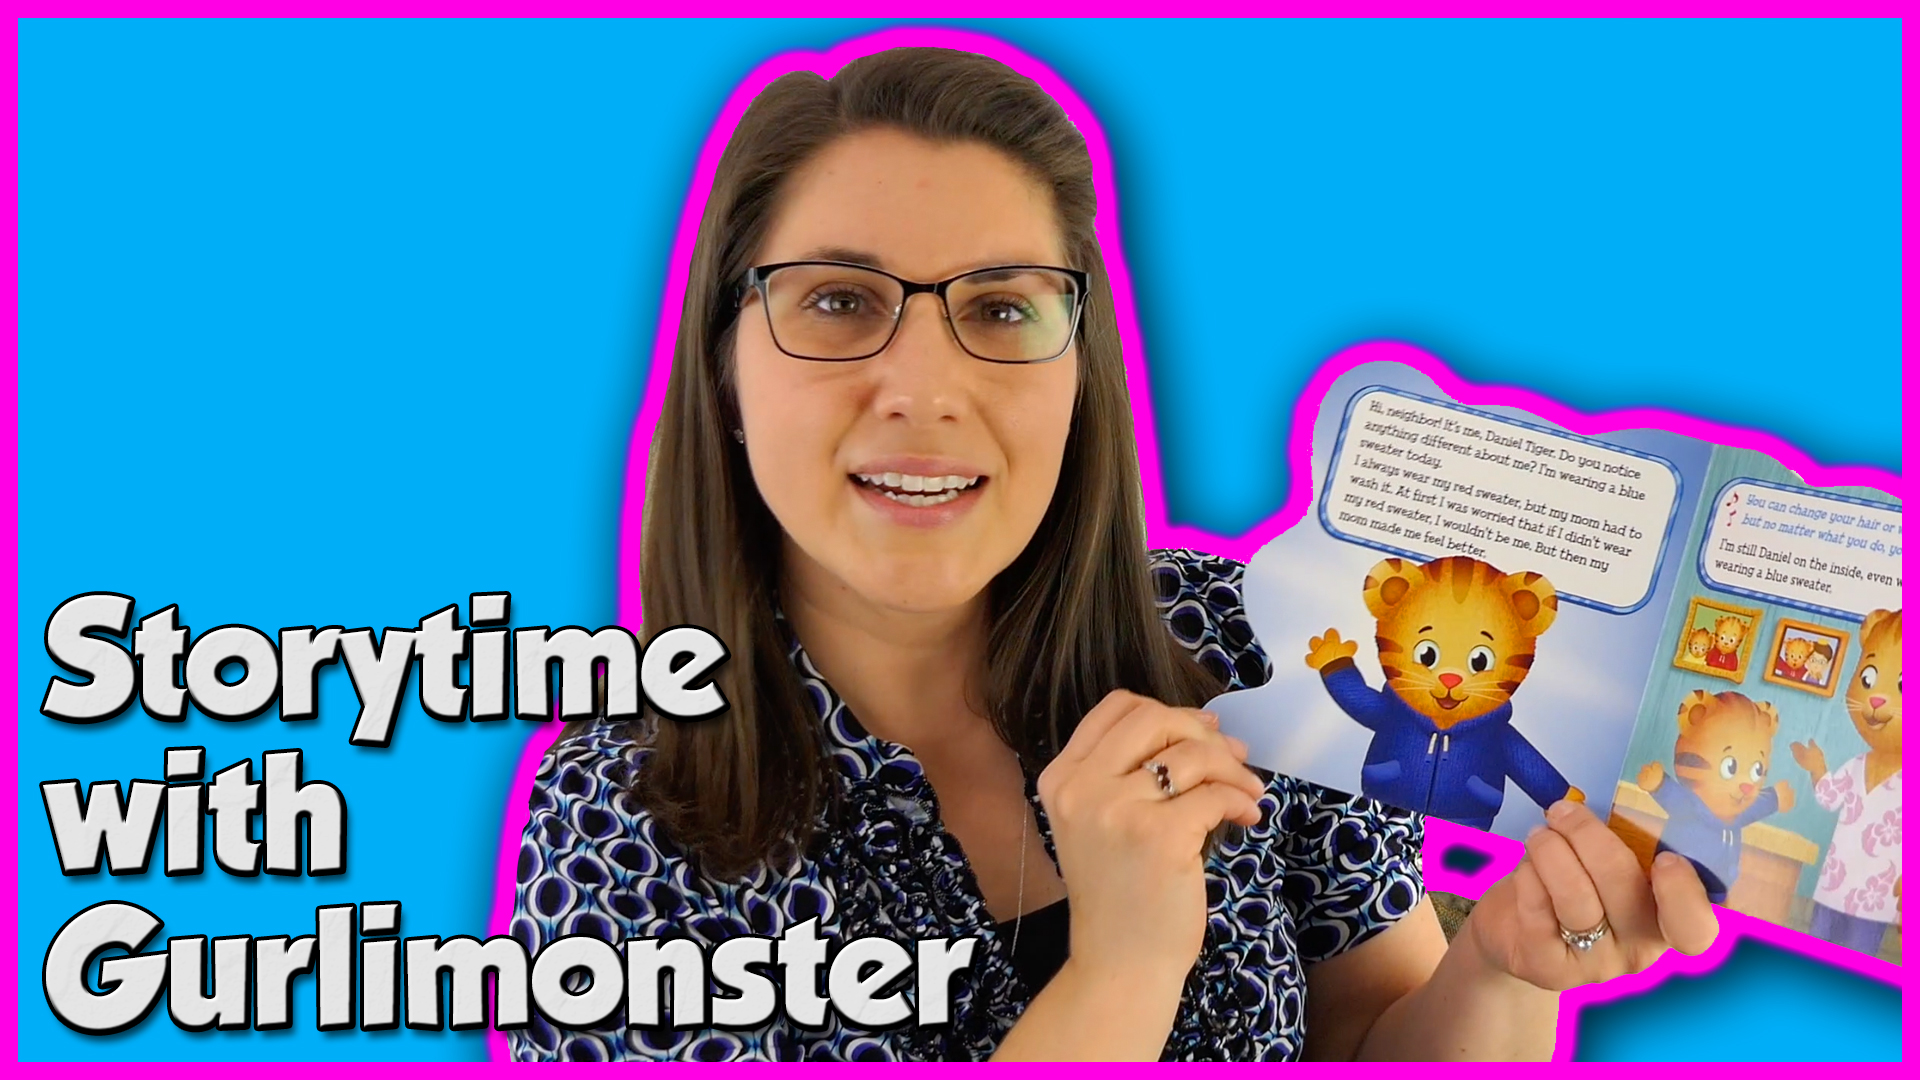 Storytime with Gurlimonster - Episode 17